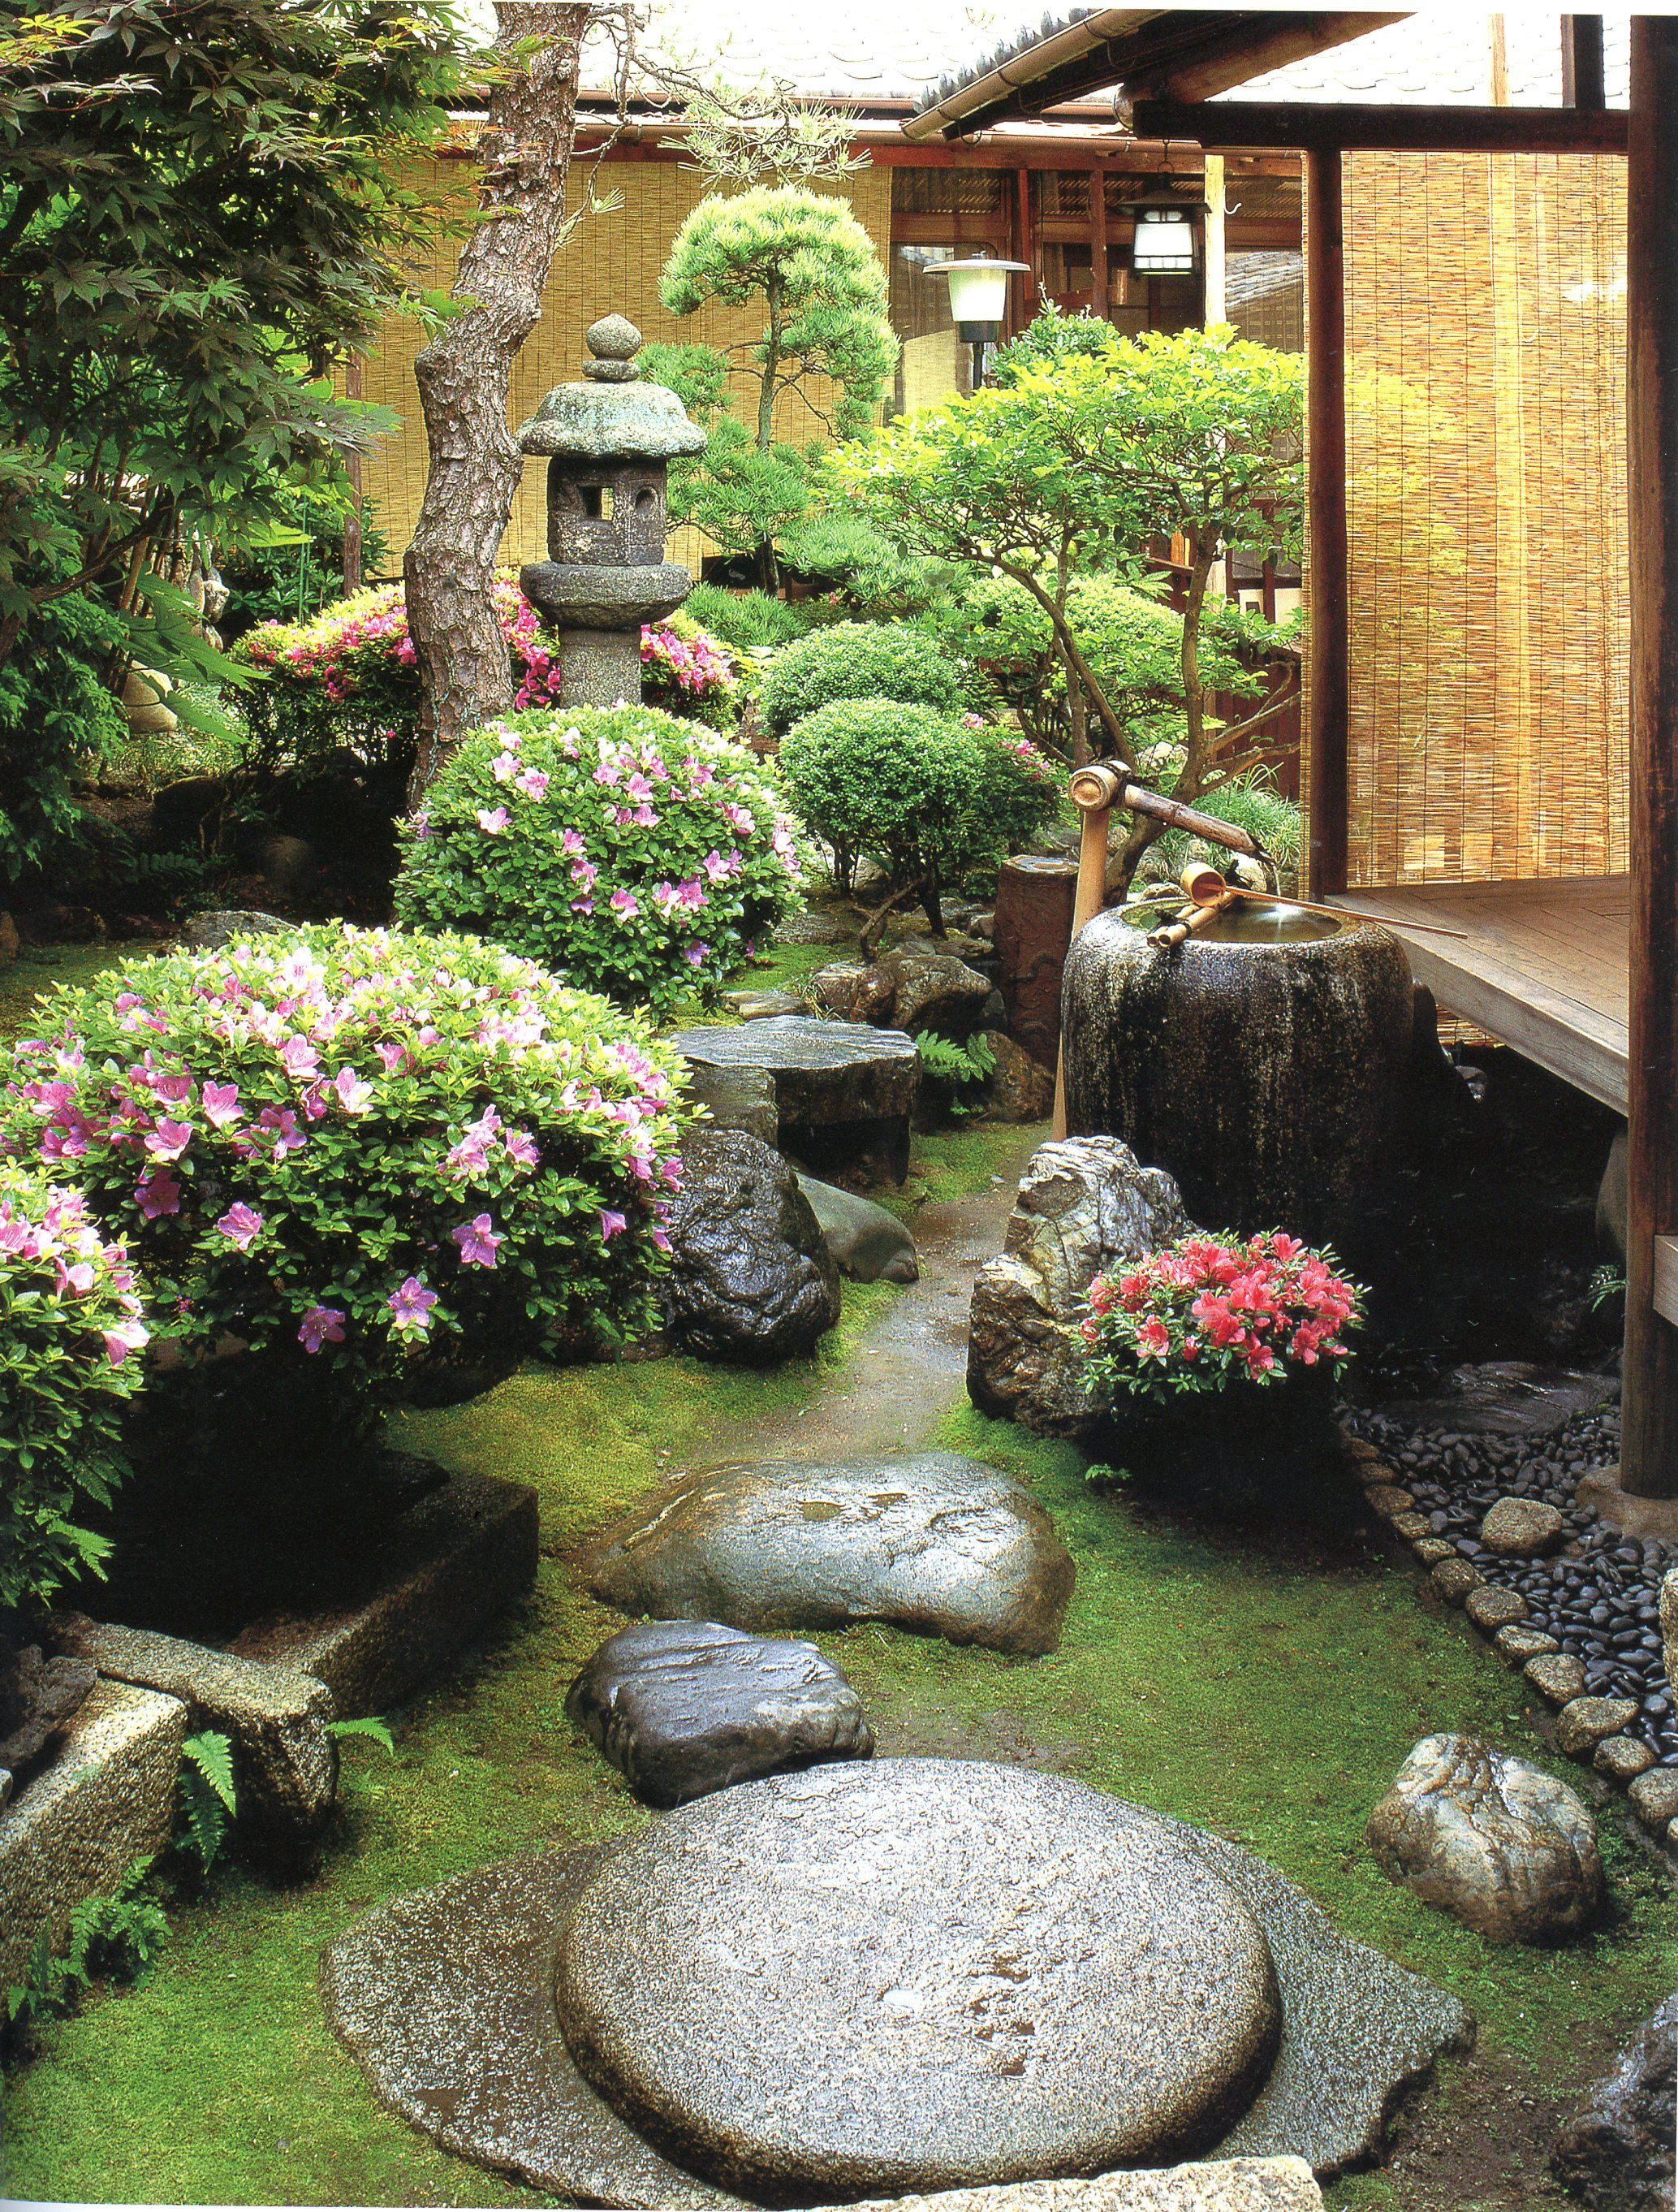 Yoshida residence landscapes for small spaces japanese - Japanese garden ideas for small spaces ...